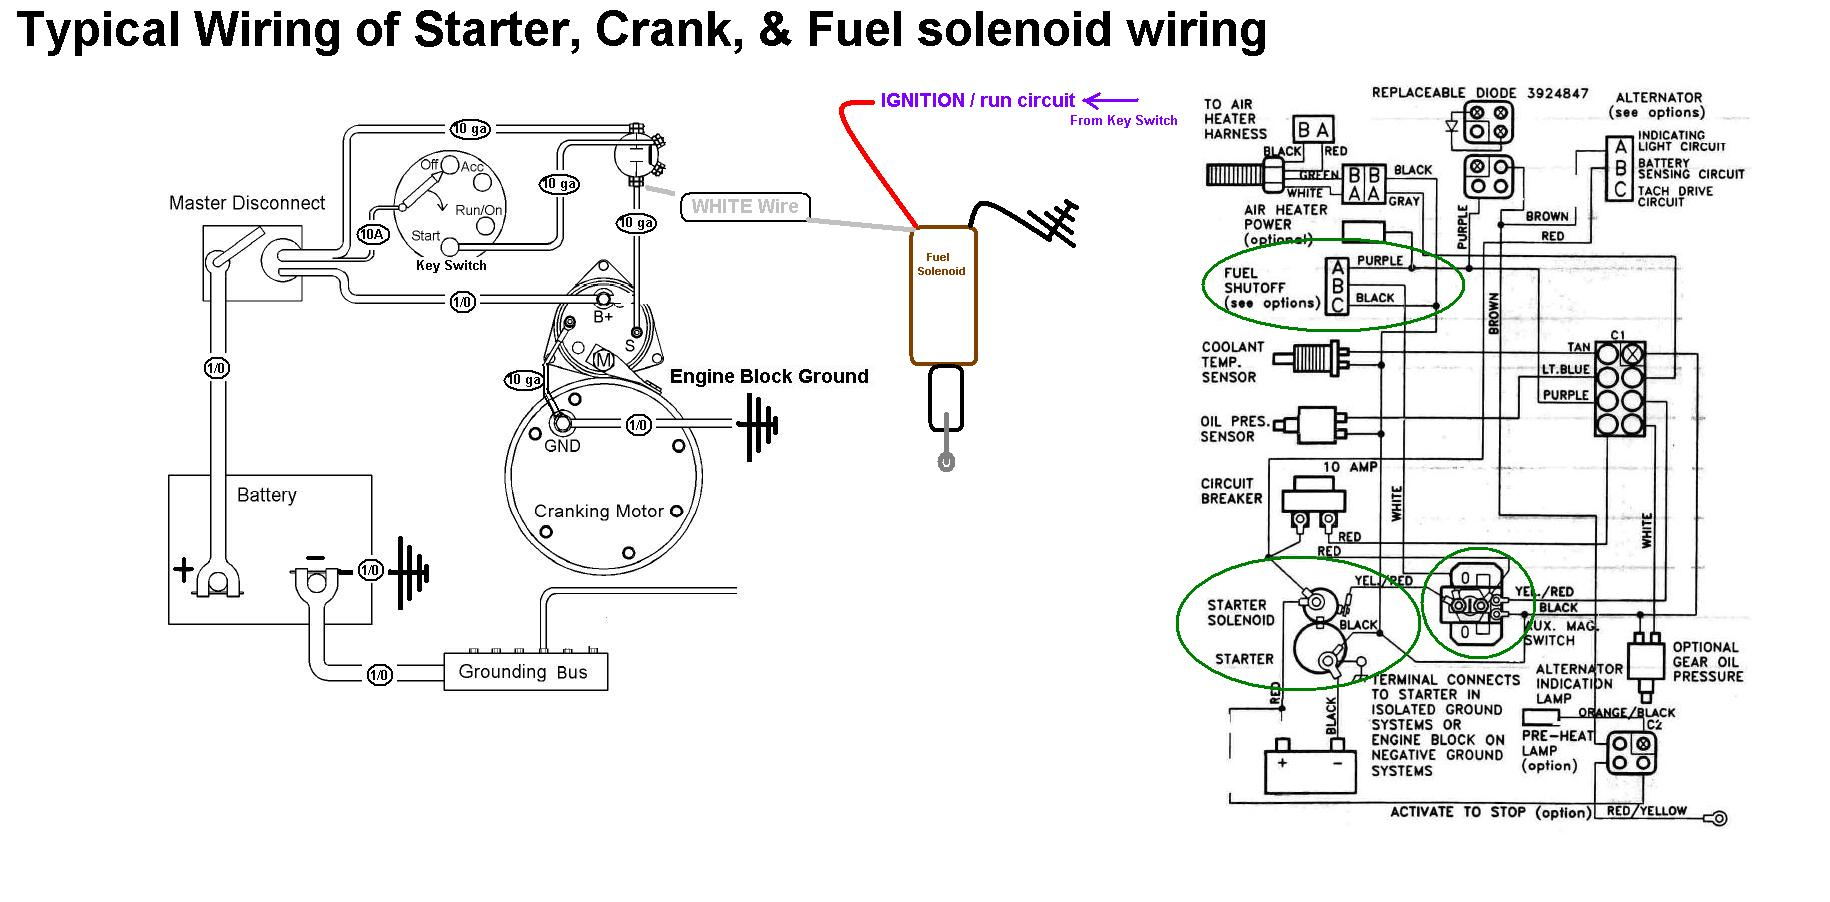 Marine Starter Solenoid Wiring Trusted Diagram Ford